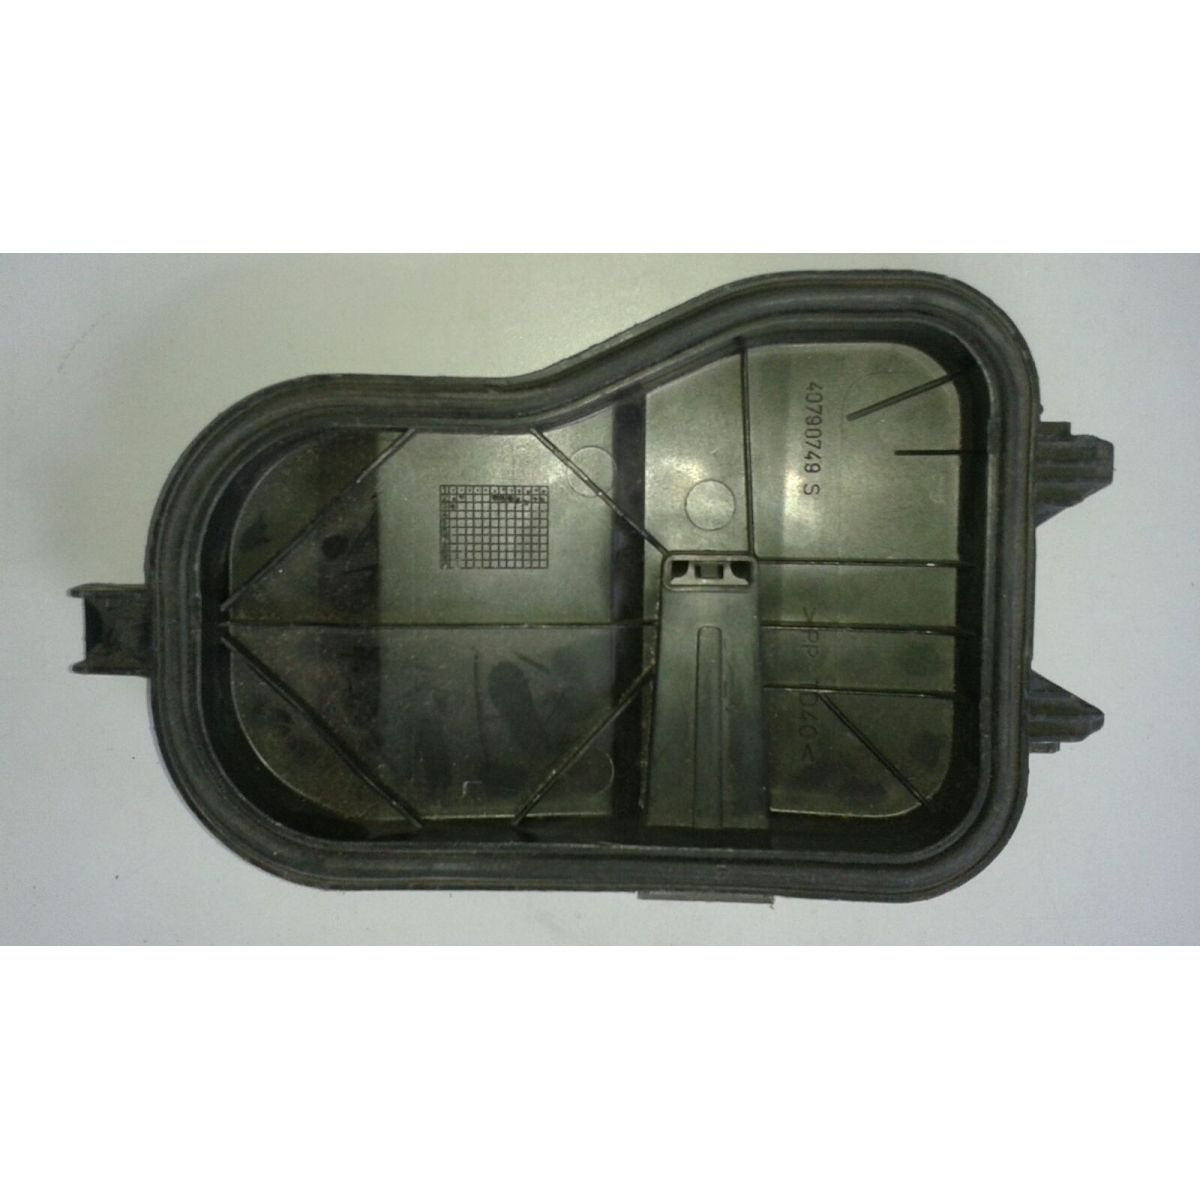 Tampa Farol Idea 04 a 10  - Amd Auto Pe�as